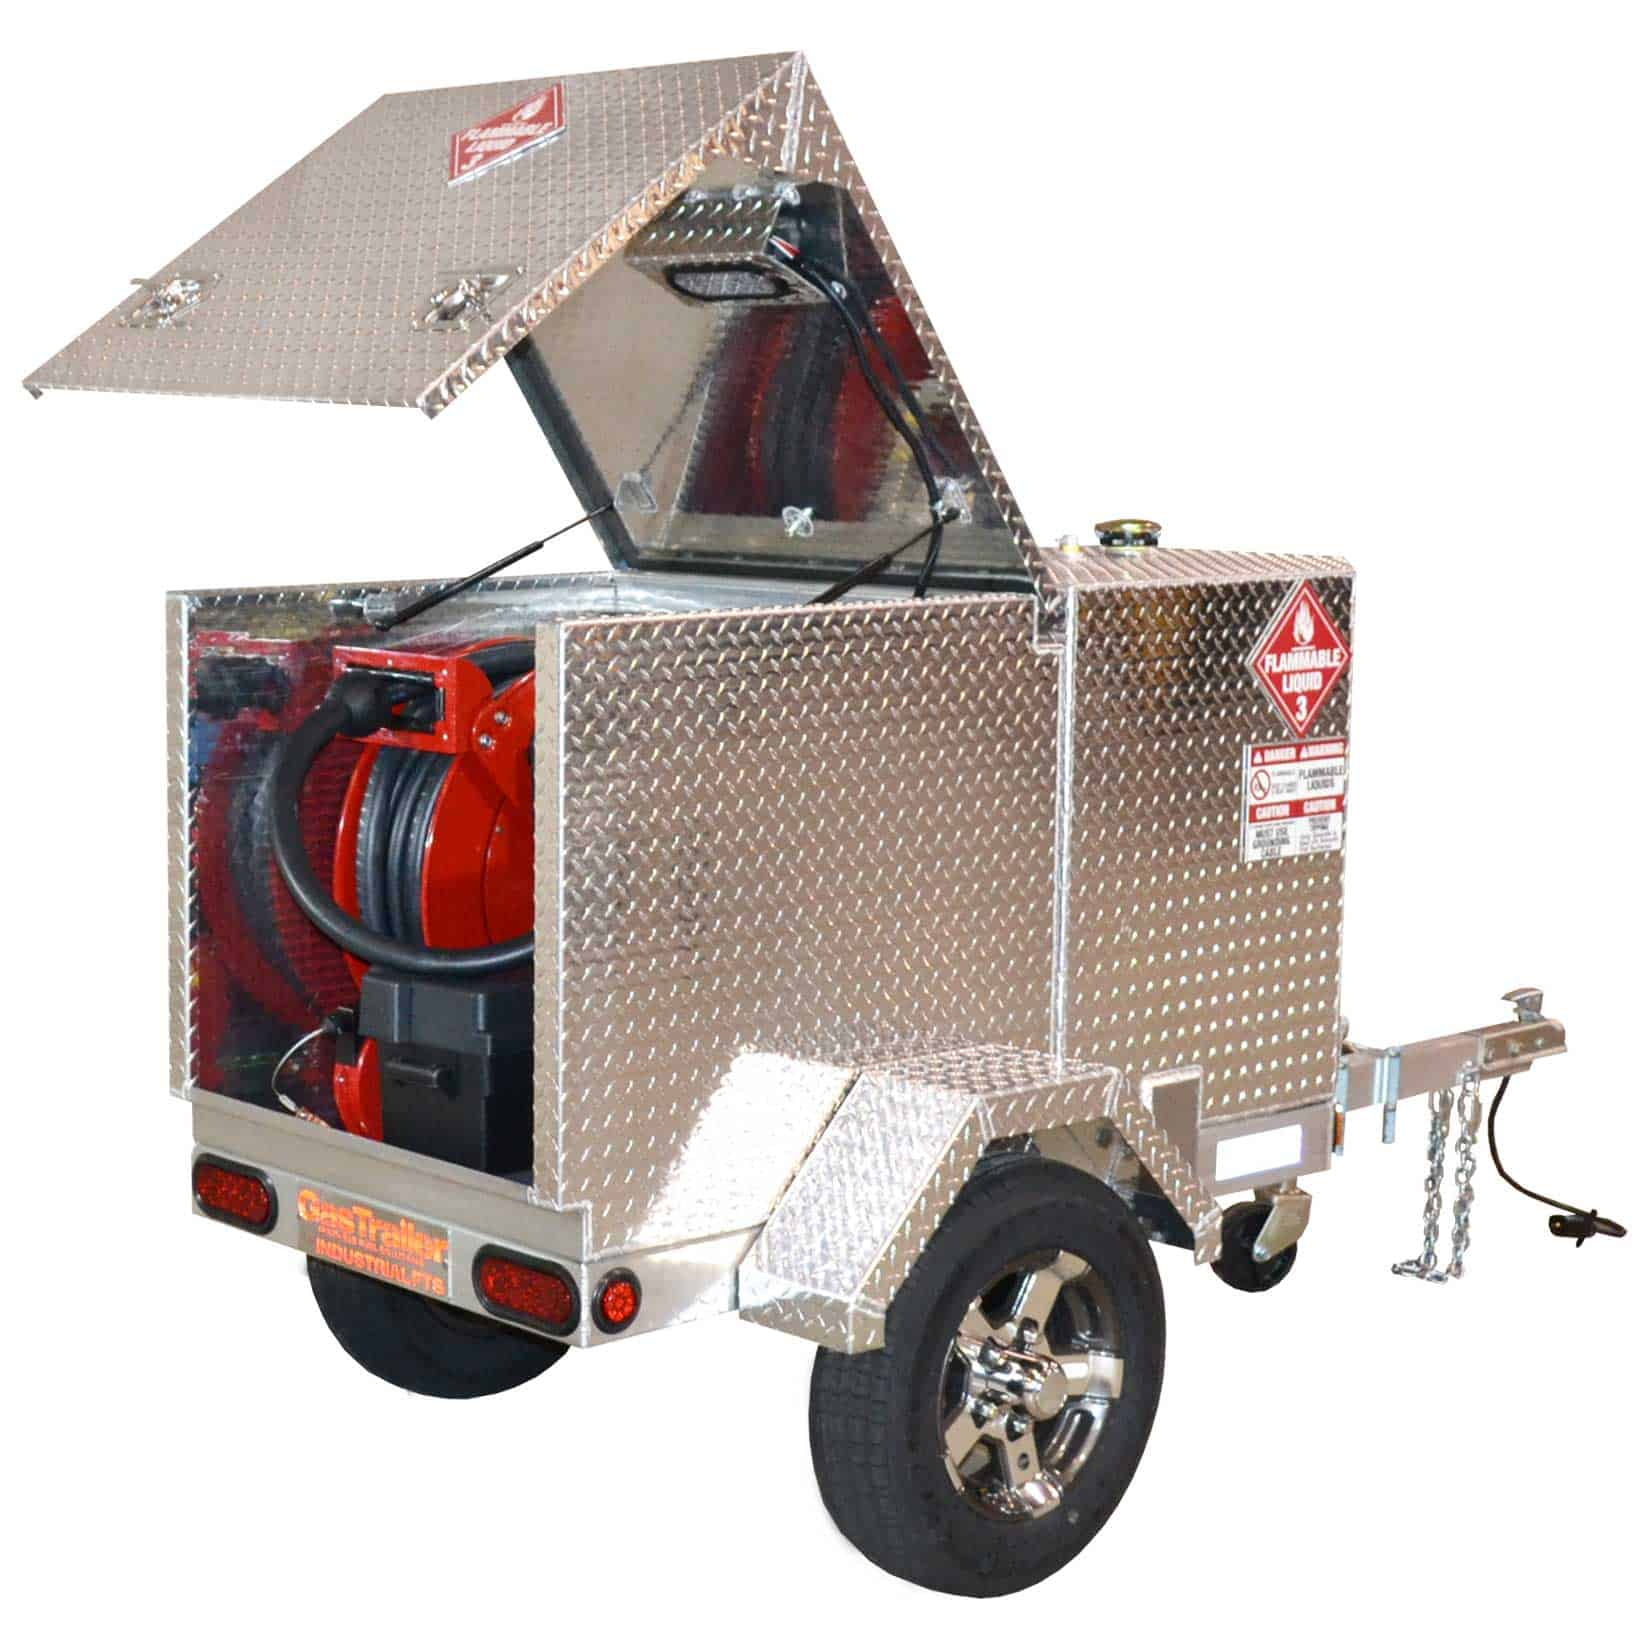 You are currently viewing Engineering expertise enhances Robinson's portable fuel solutions